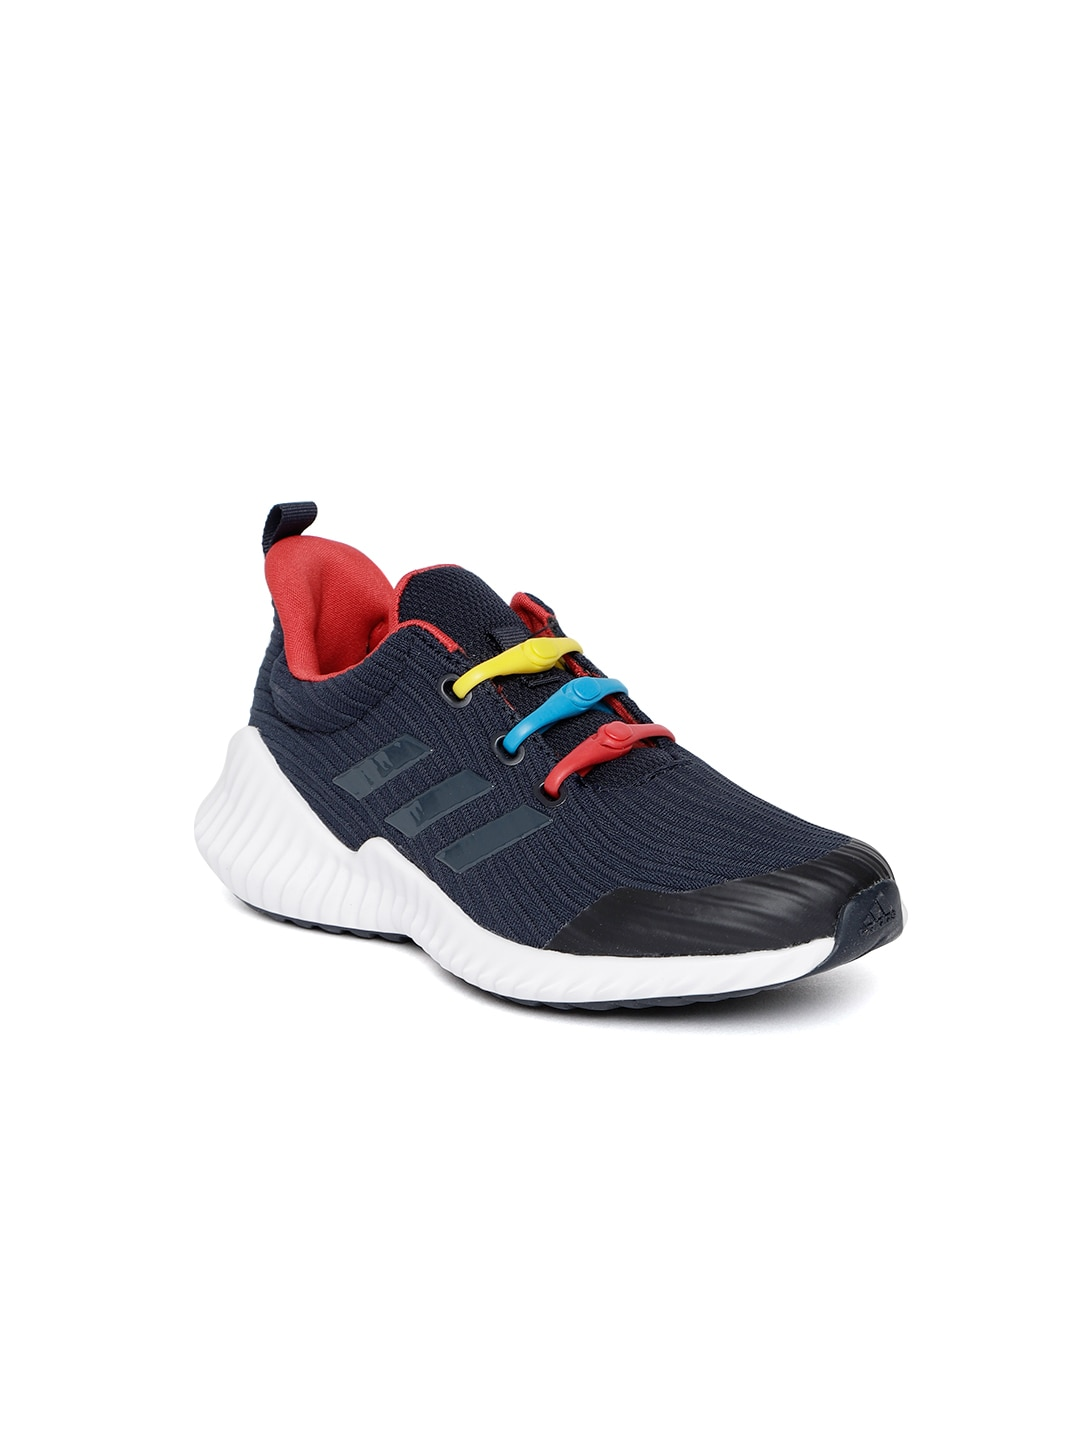 buy popular 4840a 93bac Adidas Shoes - Buy Adidas Shoes for Men   Women Online - Myntra